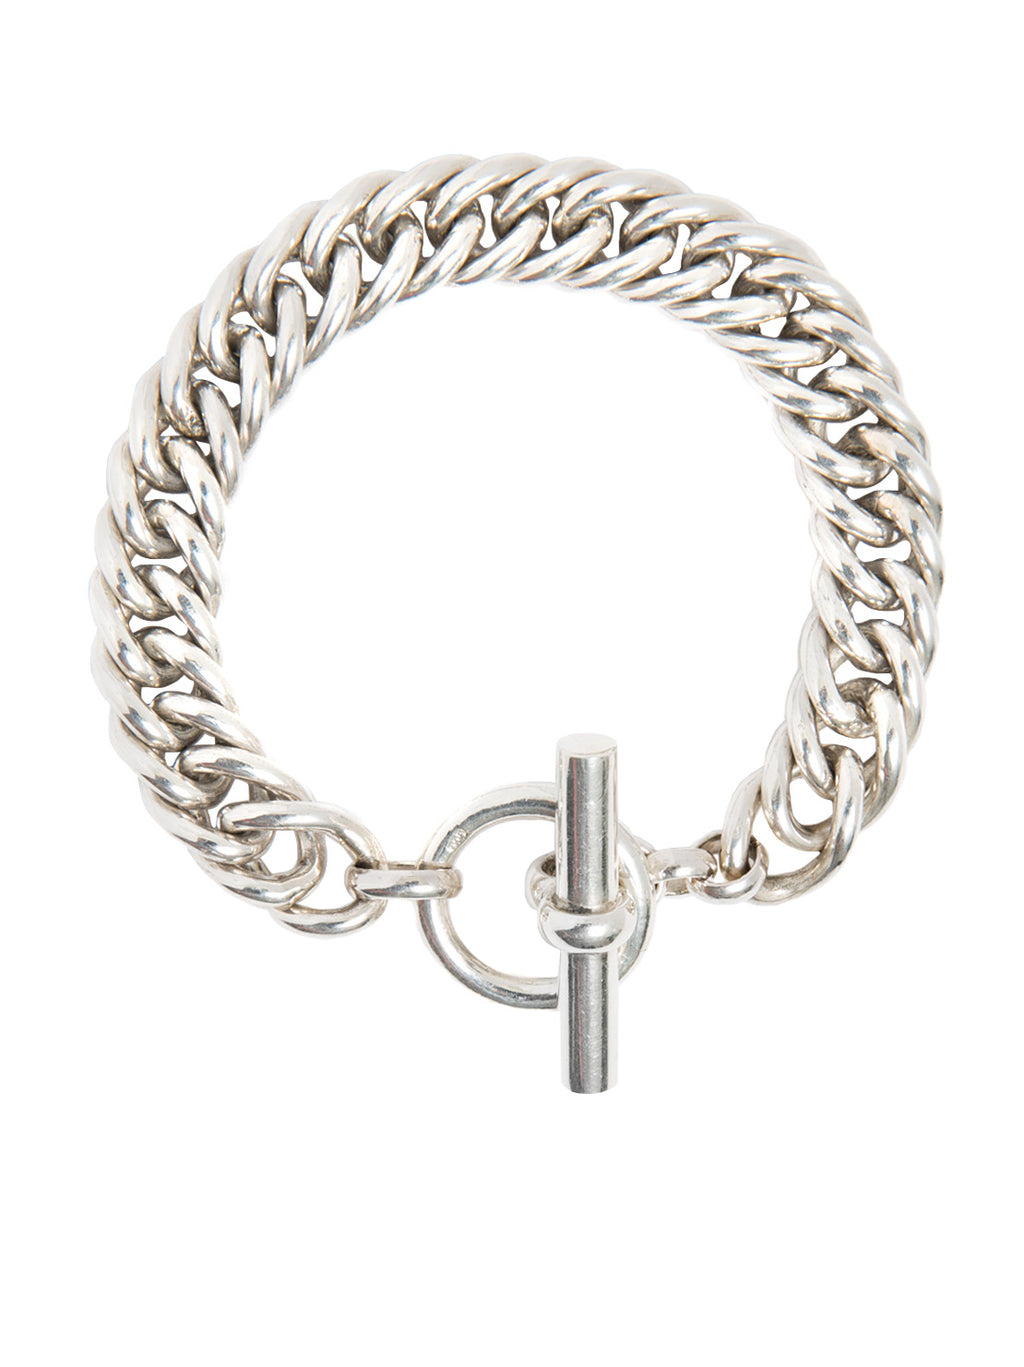 TILLY SVEAAS LARGE SILVER CURB CHAIN BRACELET